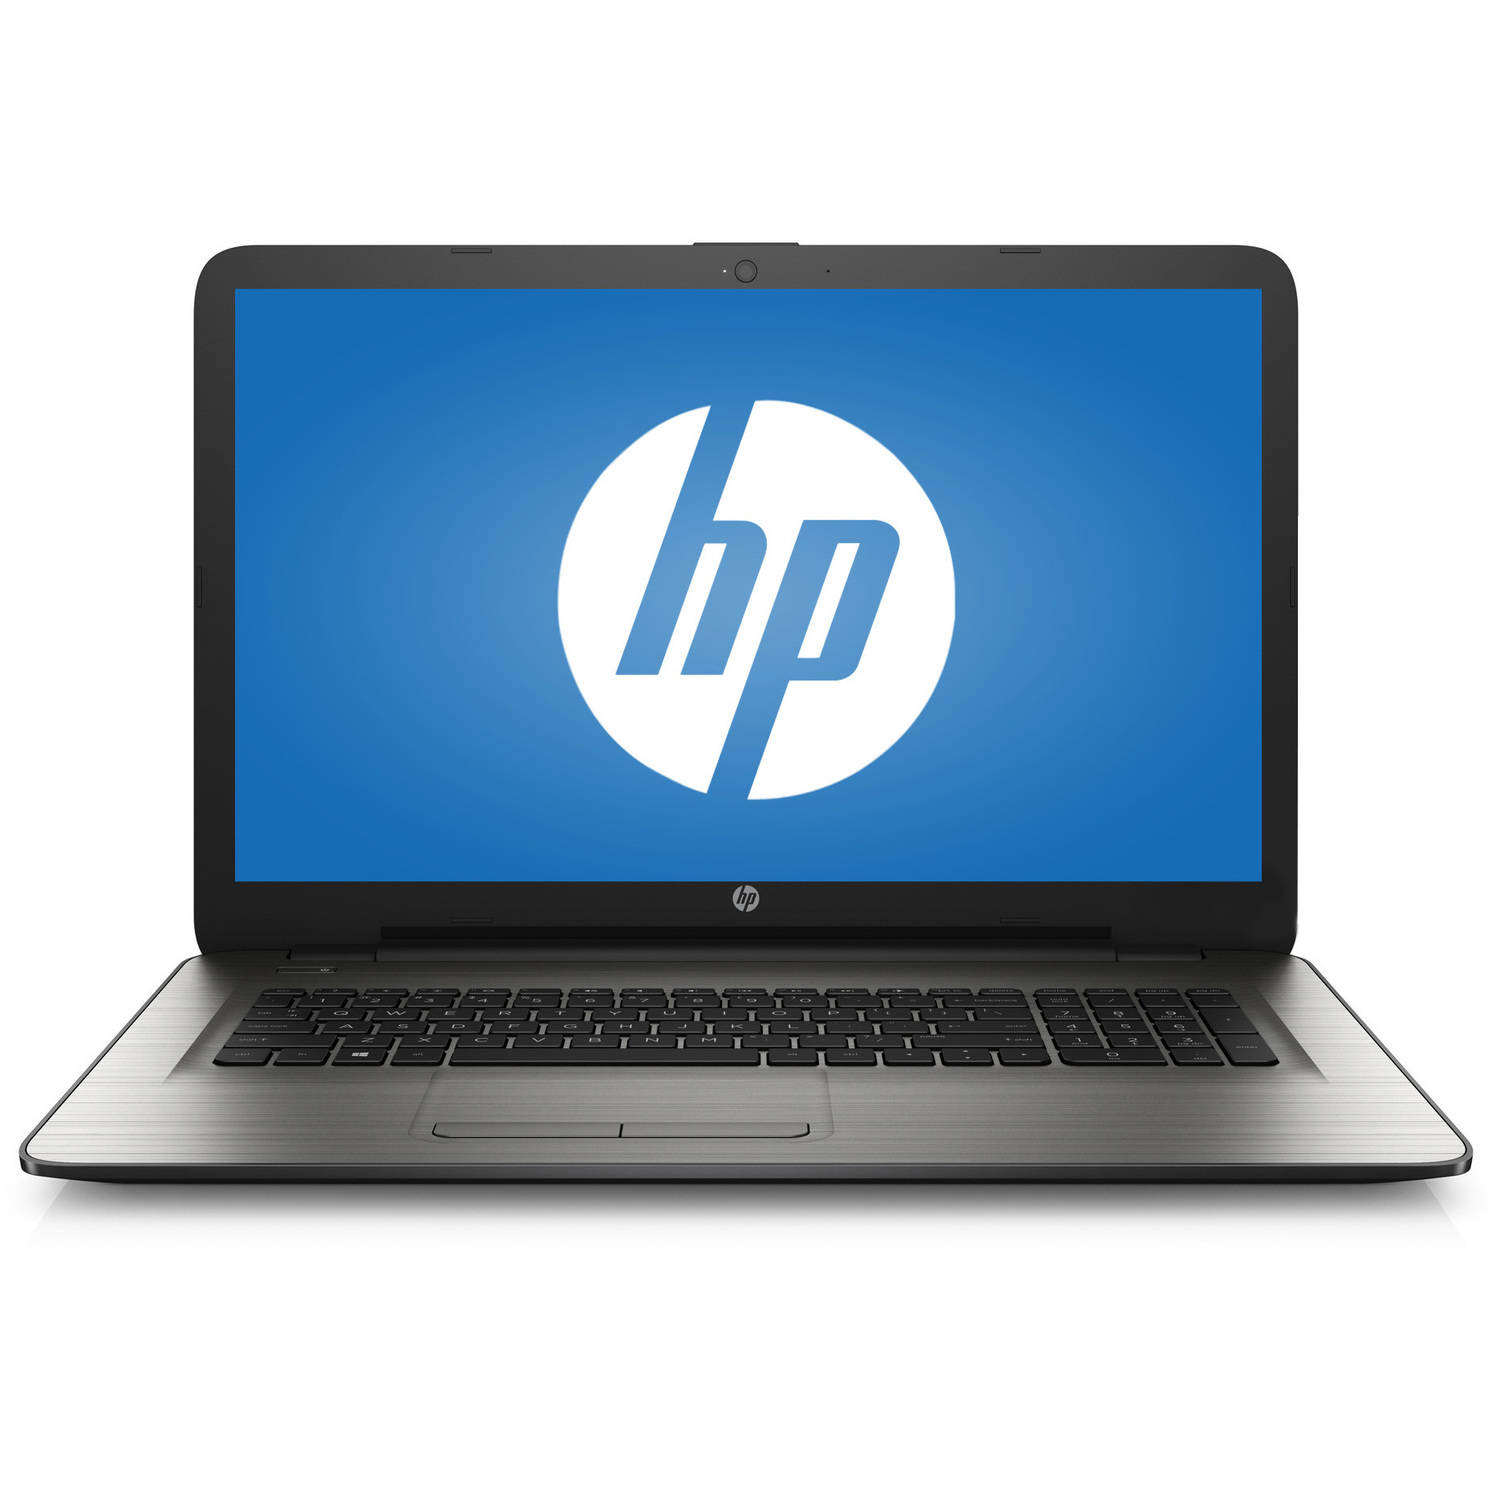 "HP 17-x020nr 17.3"" Laptop, touch screen, Windows 10 Home, Intel Core i3-5005U Processor, 8GB RAM, 1TB Hard Drive"